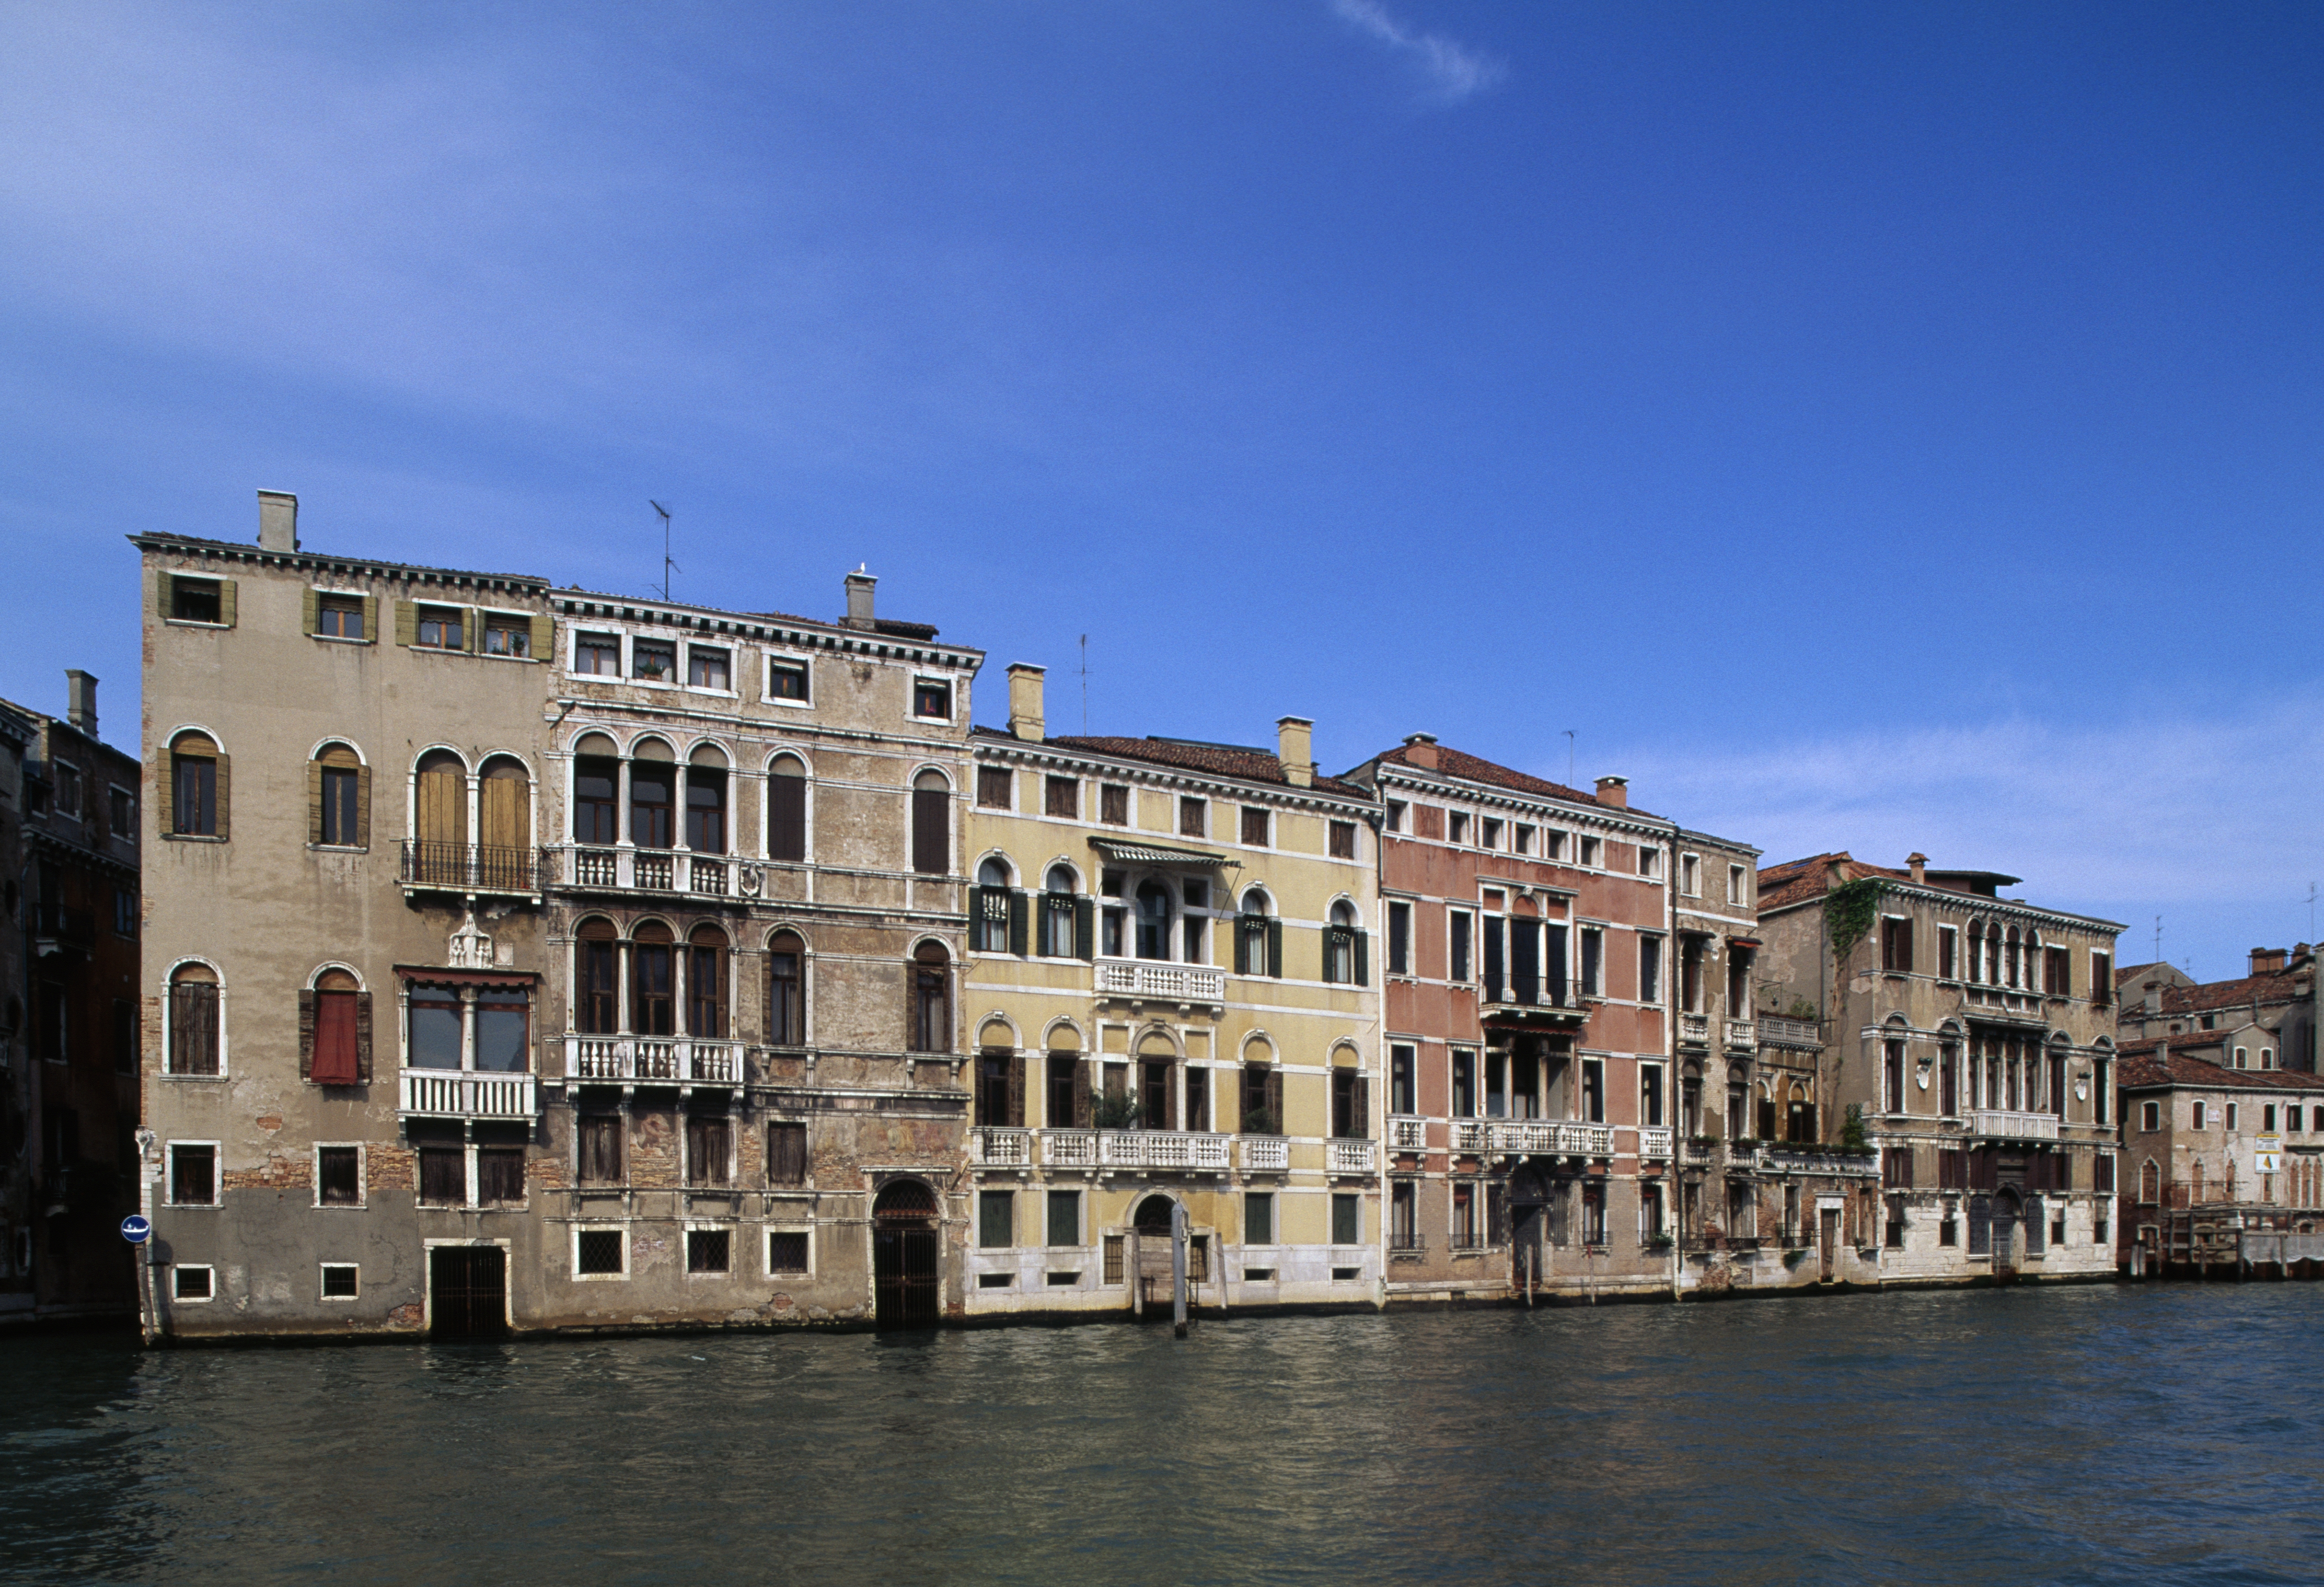 ITALY - CIRCA 2016: Glimpse of the buildings along the Grand Canal, Venice (UNESCO World Heritage List, 1987), Veneto, Italy. (Photo by DeAgostini/Getty Images)